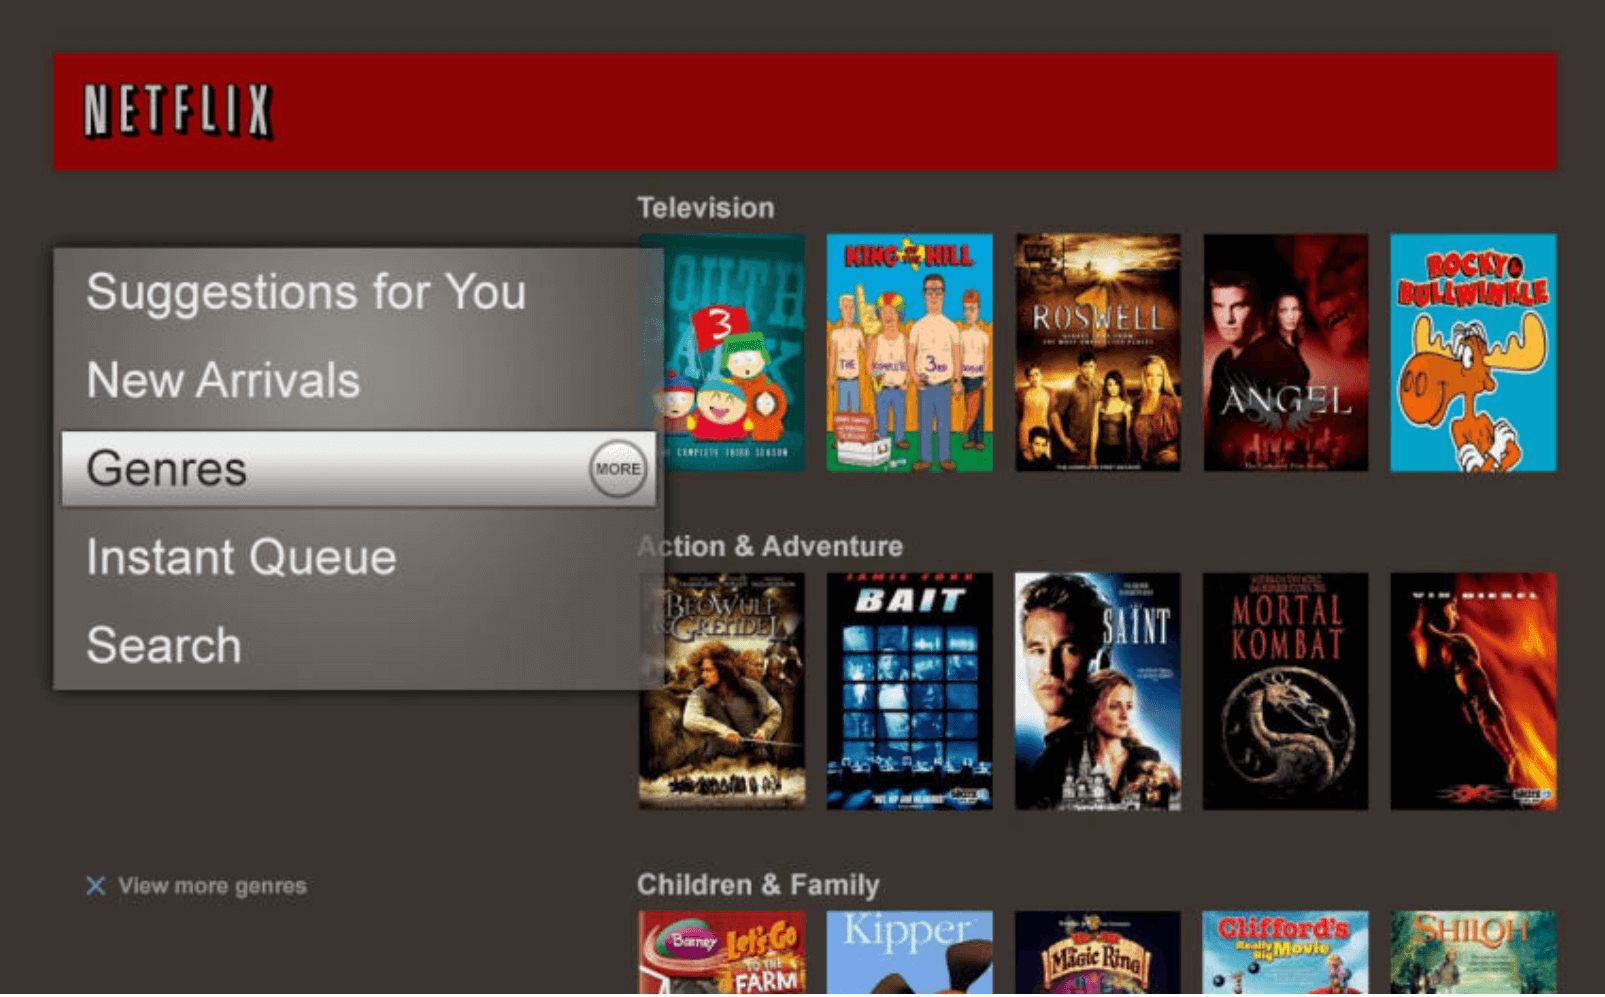 Netflix's user interface in 2010